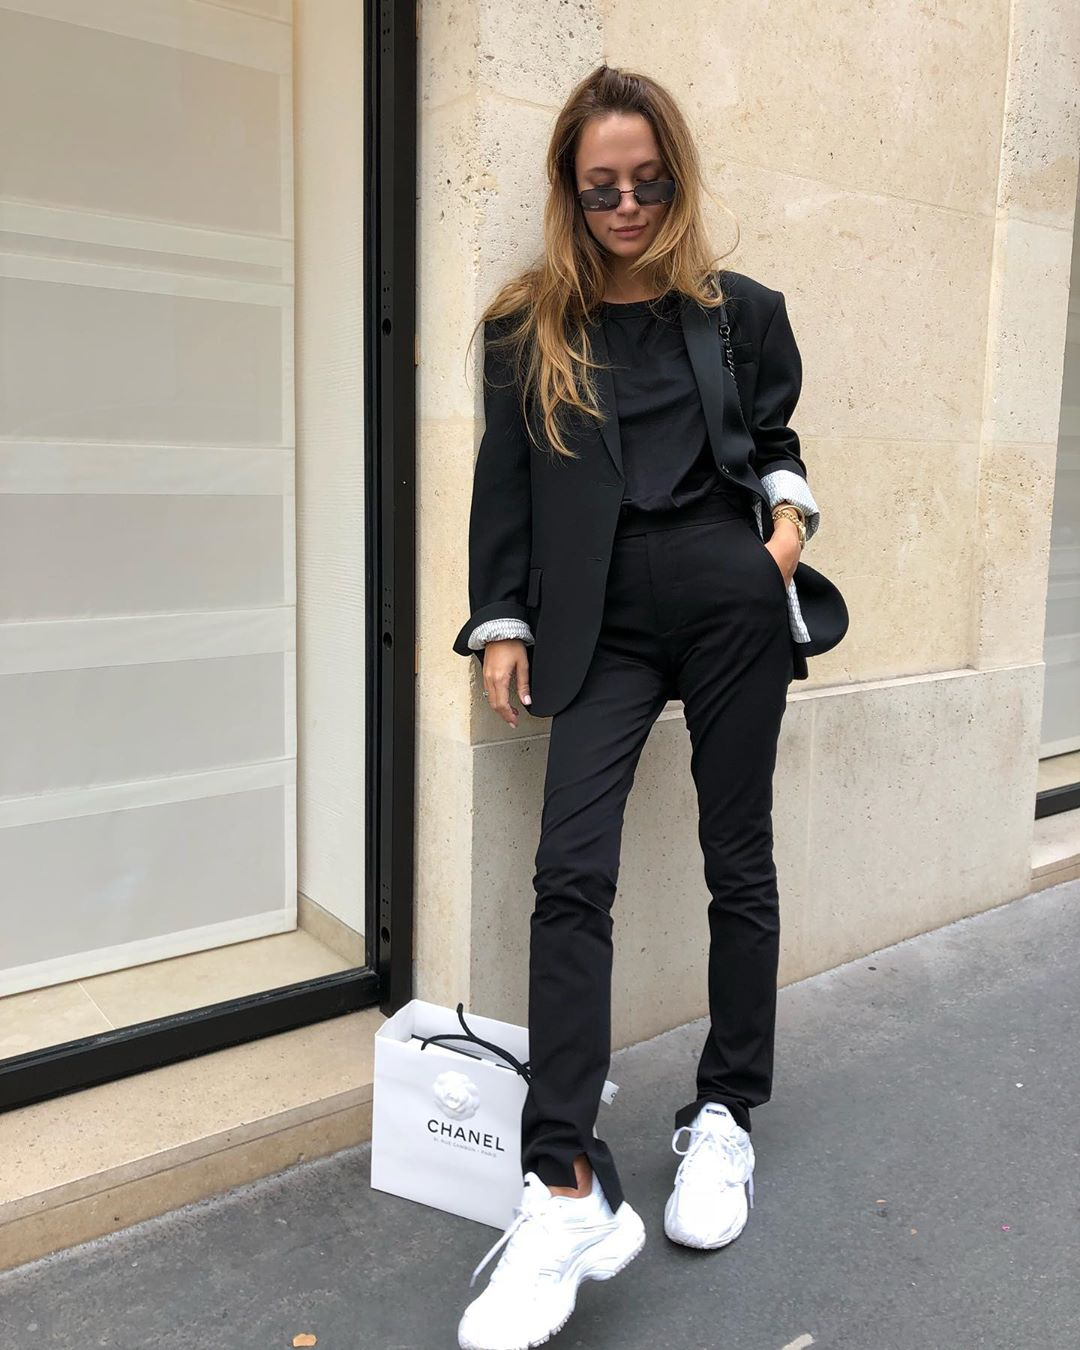 I Love This All-Black Outfit With a Sporty Twist